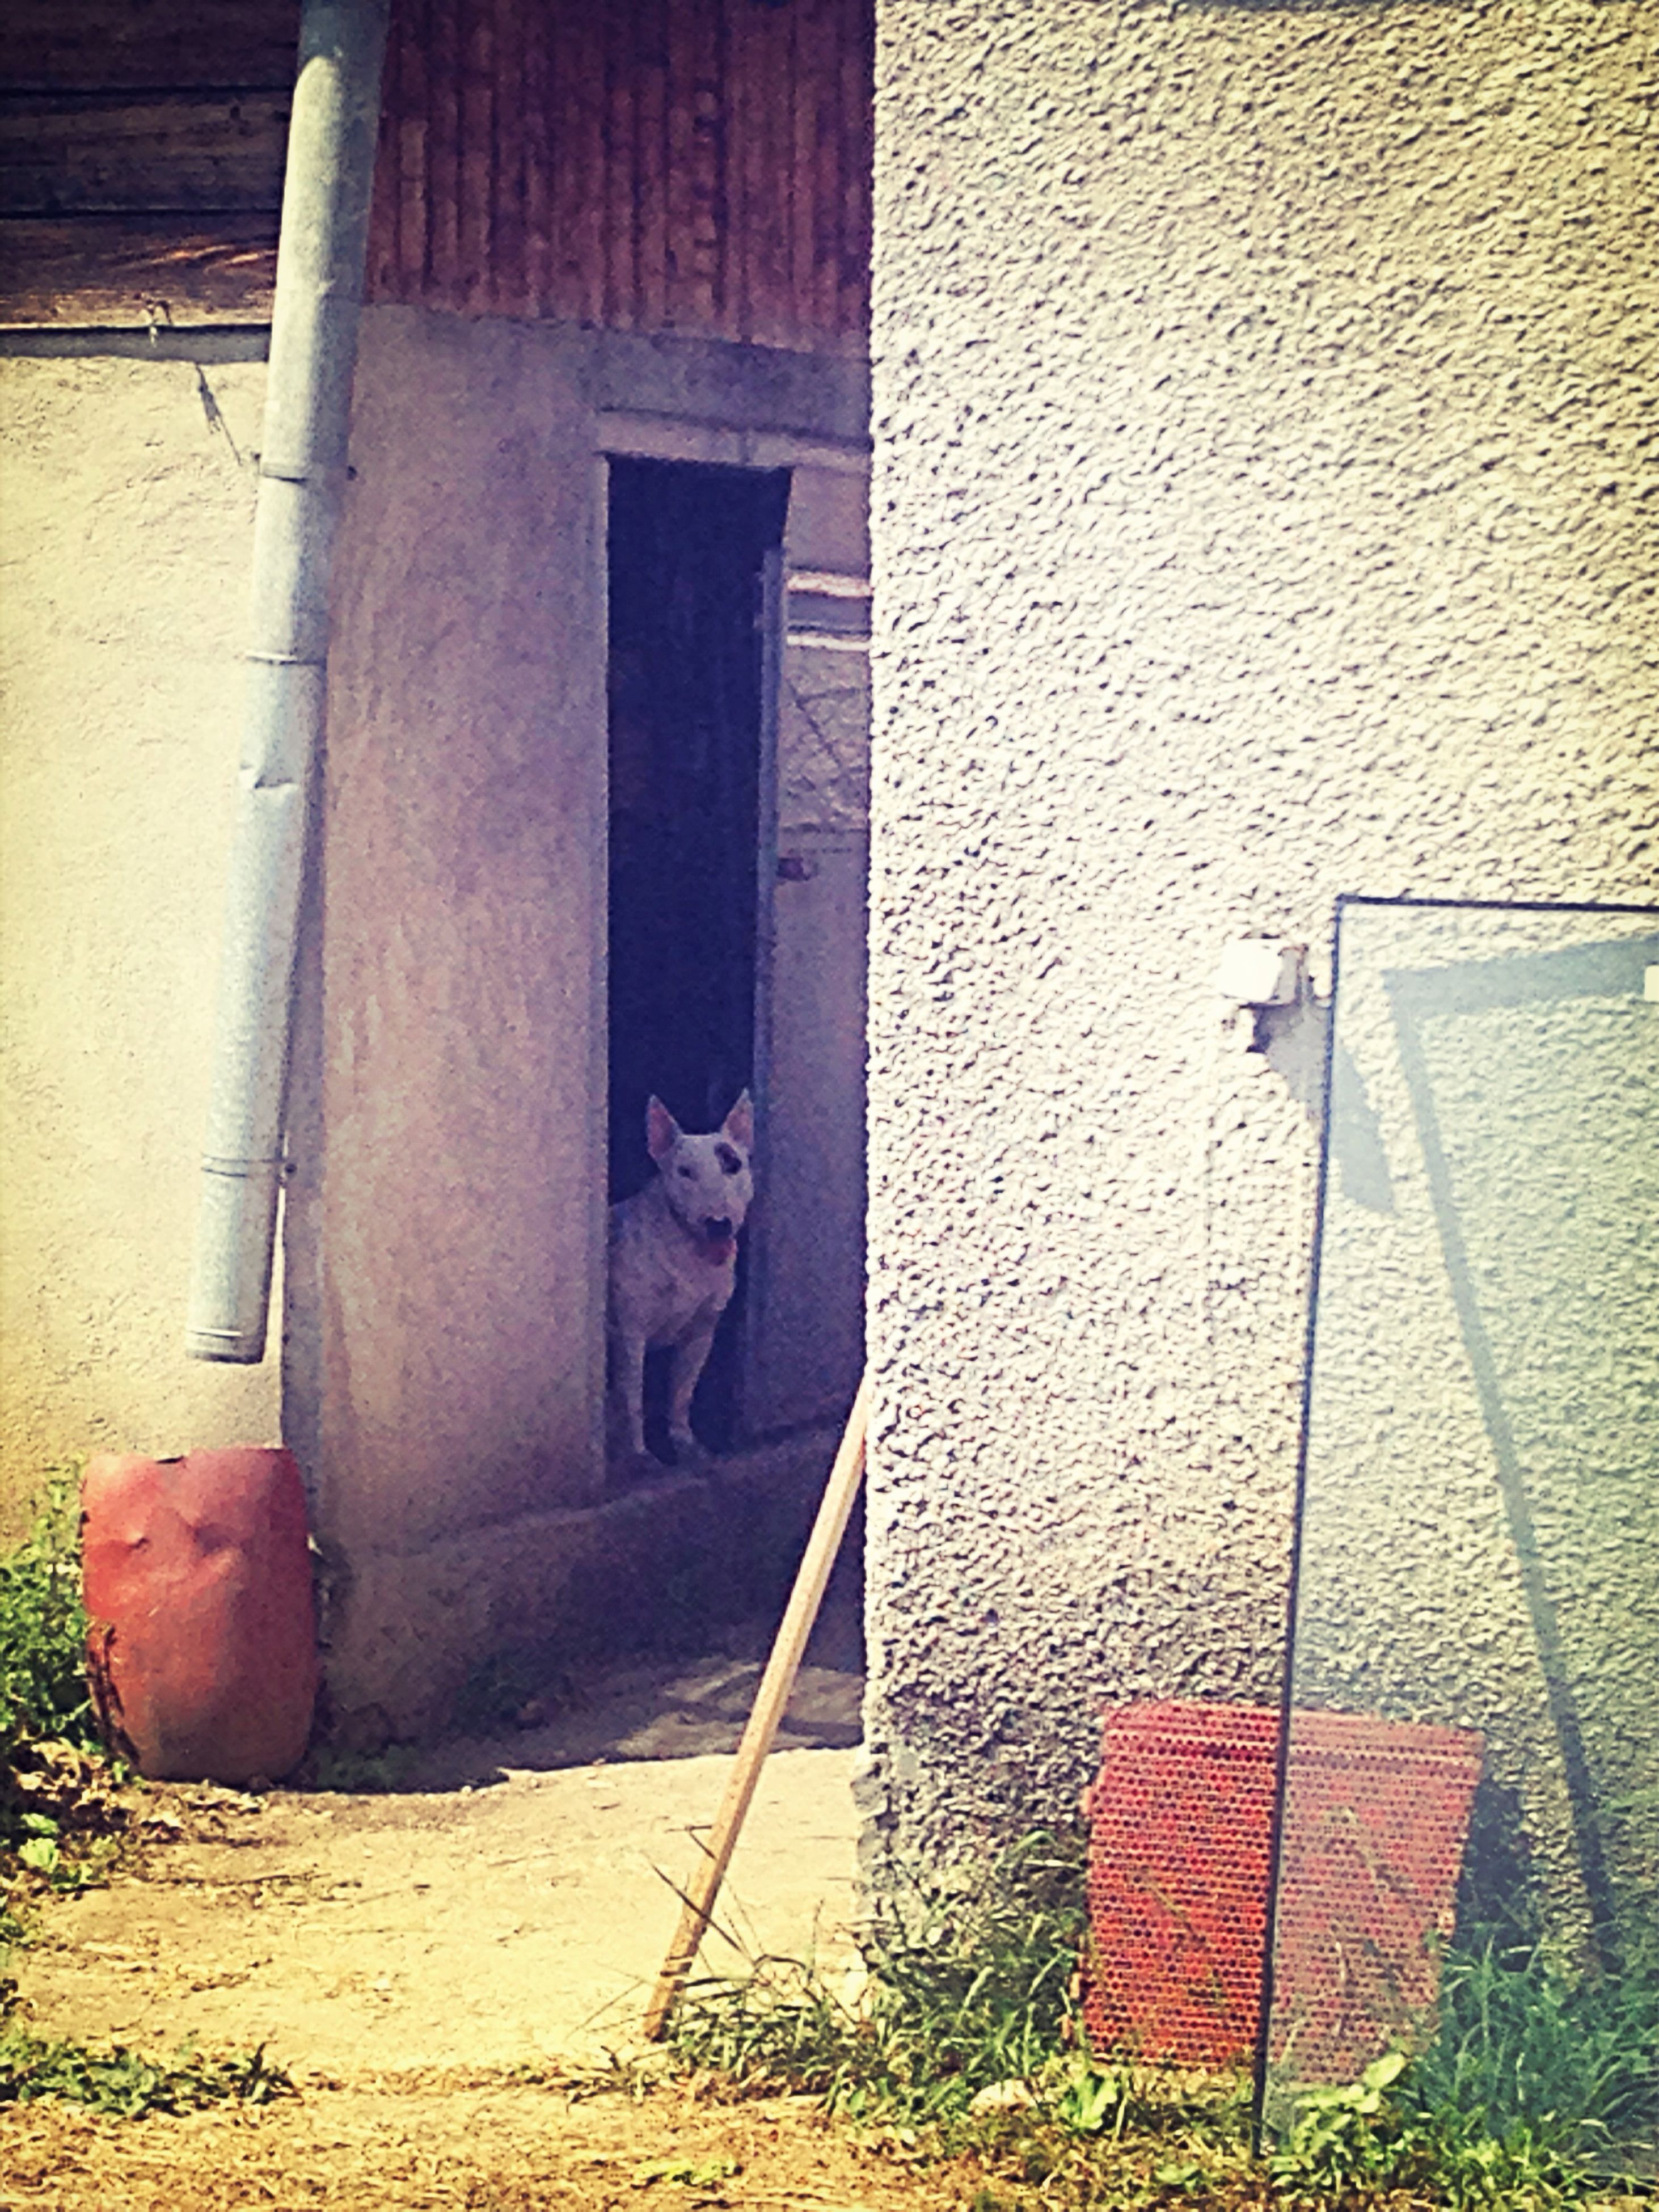 building exterior, architecture, built structure, house, wall - building feature, door, one animal, brick wall, animal themes, window, building, domestic animals, day, residential structure, outdoors, wall, no people, abandoned, sunlight, steps